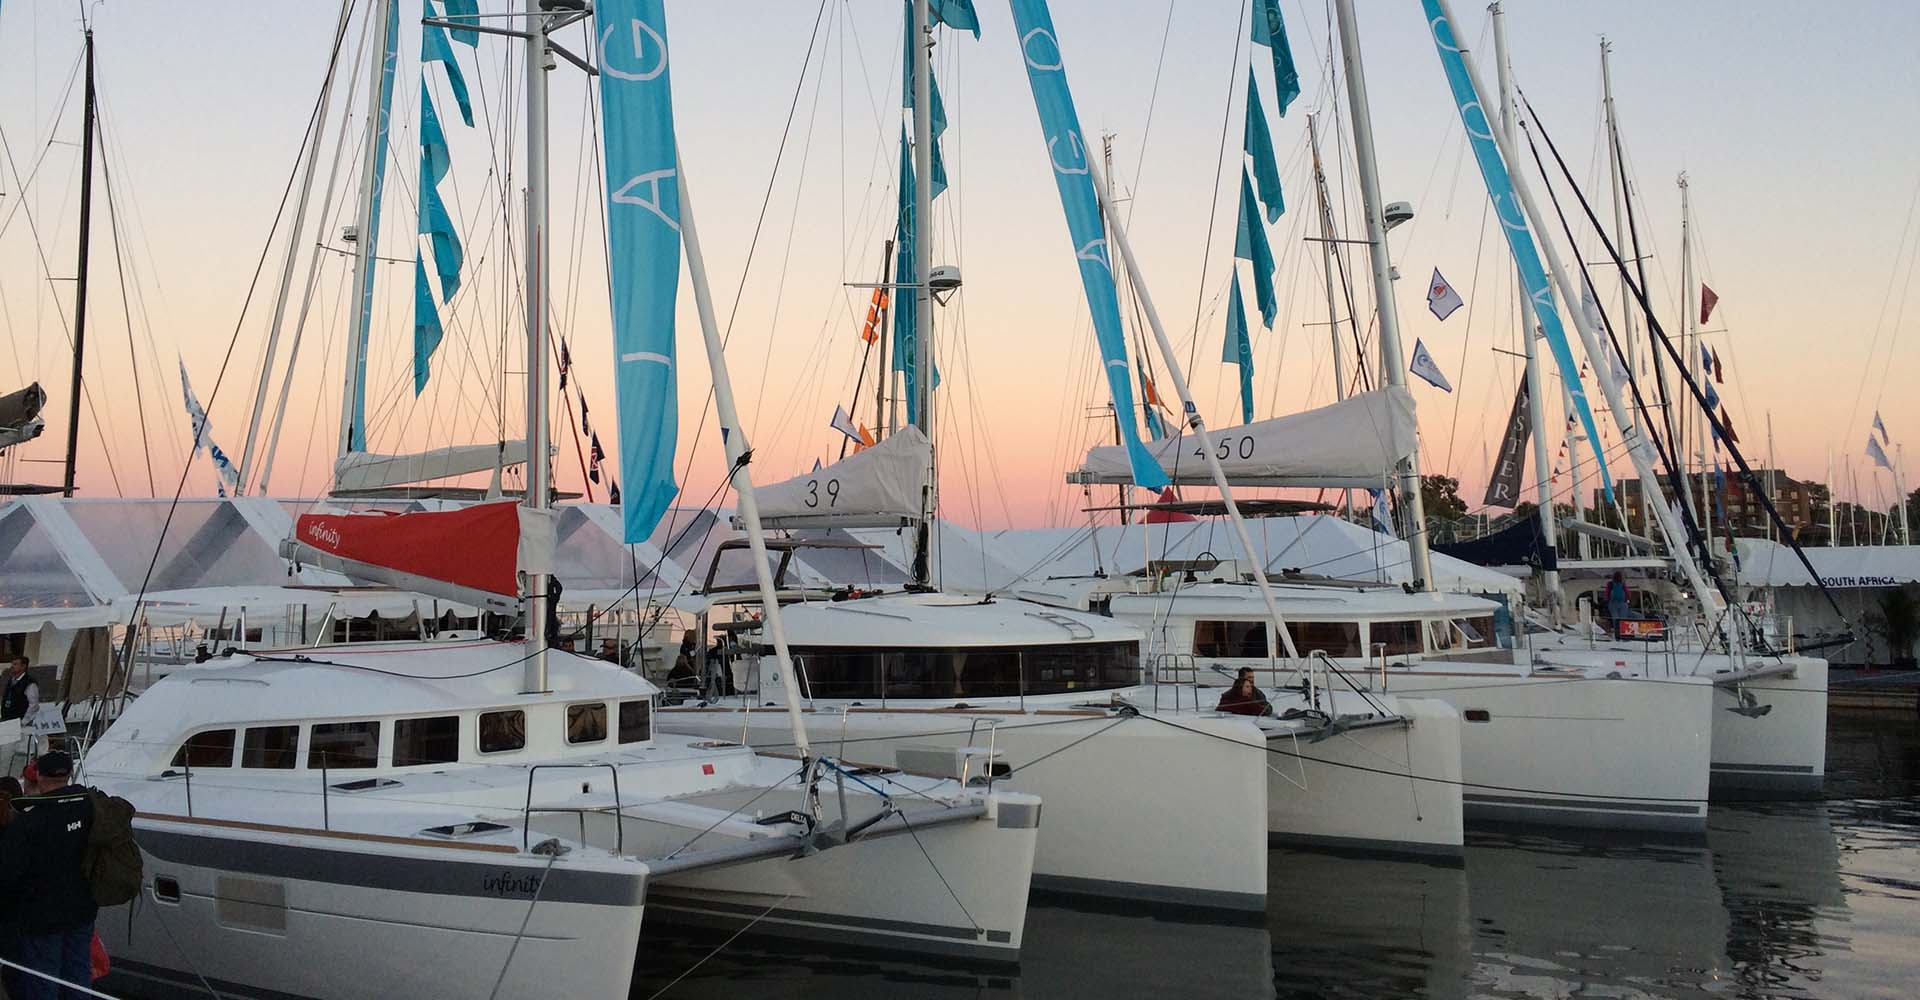 Toronto International Boat Show 2020